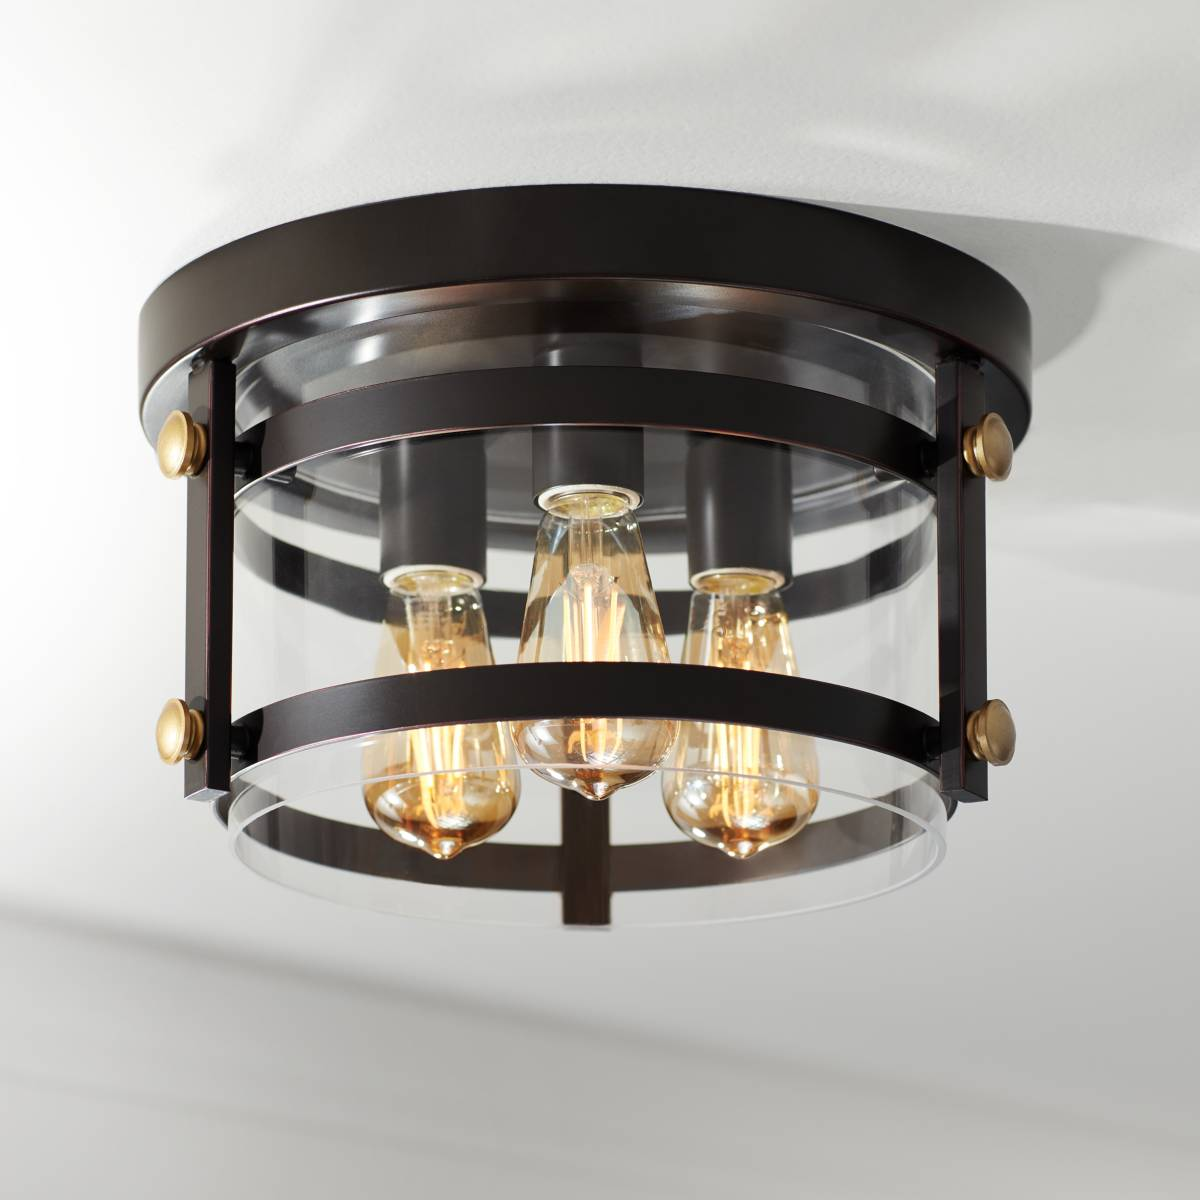 Lighting Products: Energy Efficient Ceiling Lights